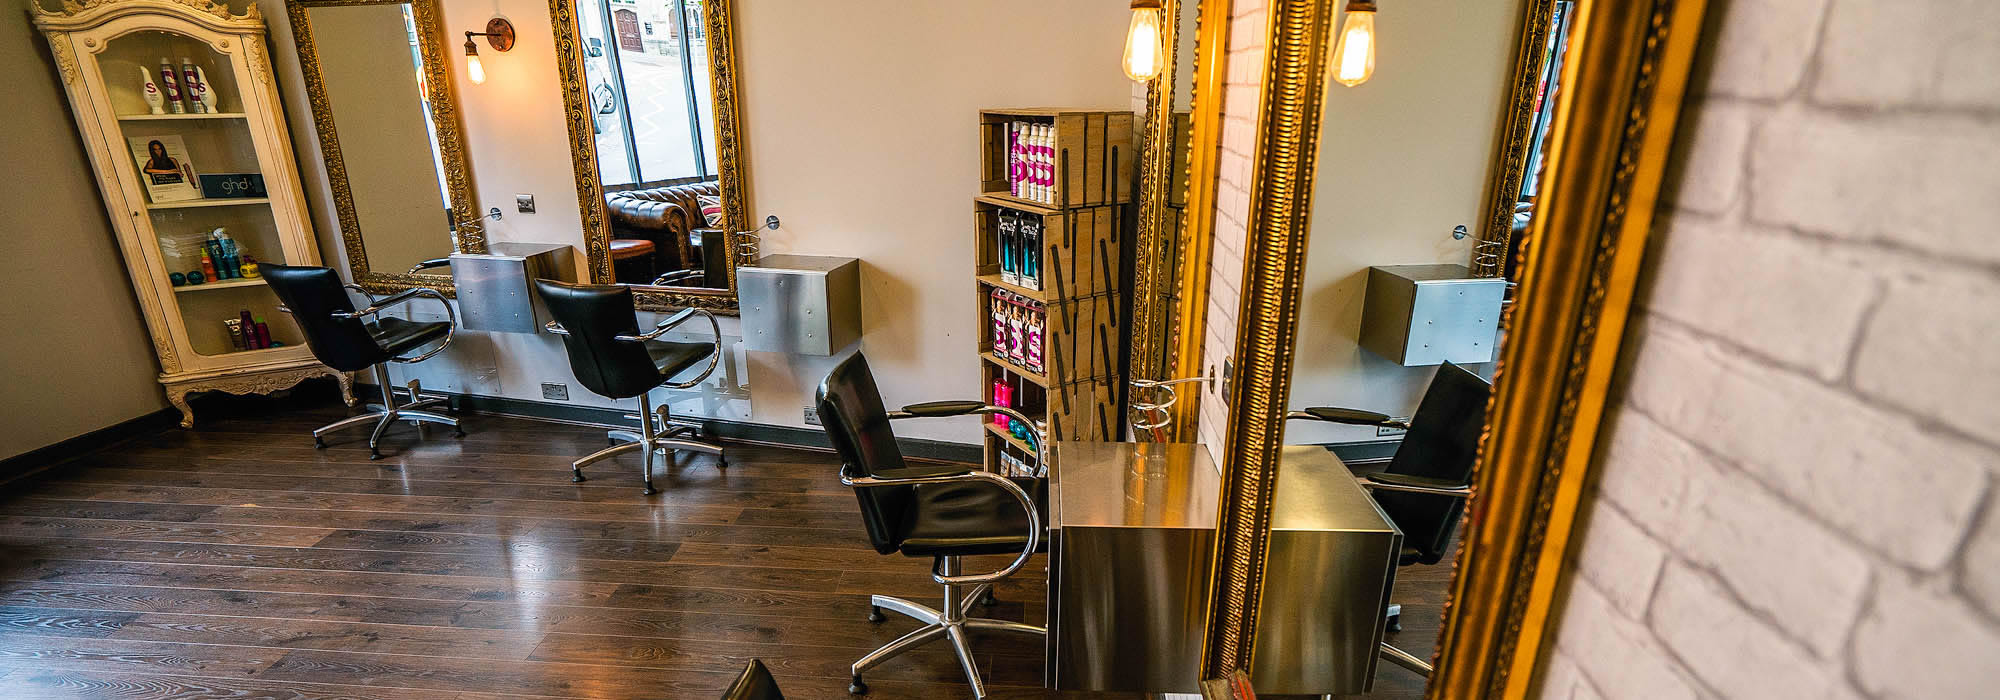 Cloud 9 Carmarthen | Hair Salon in Carmarthen | Contact Us